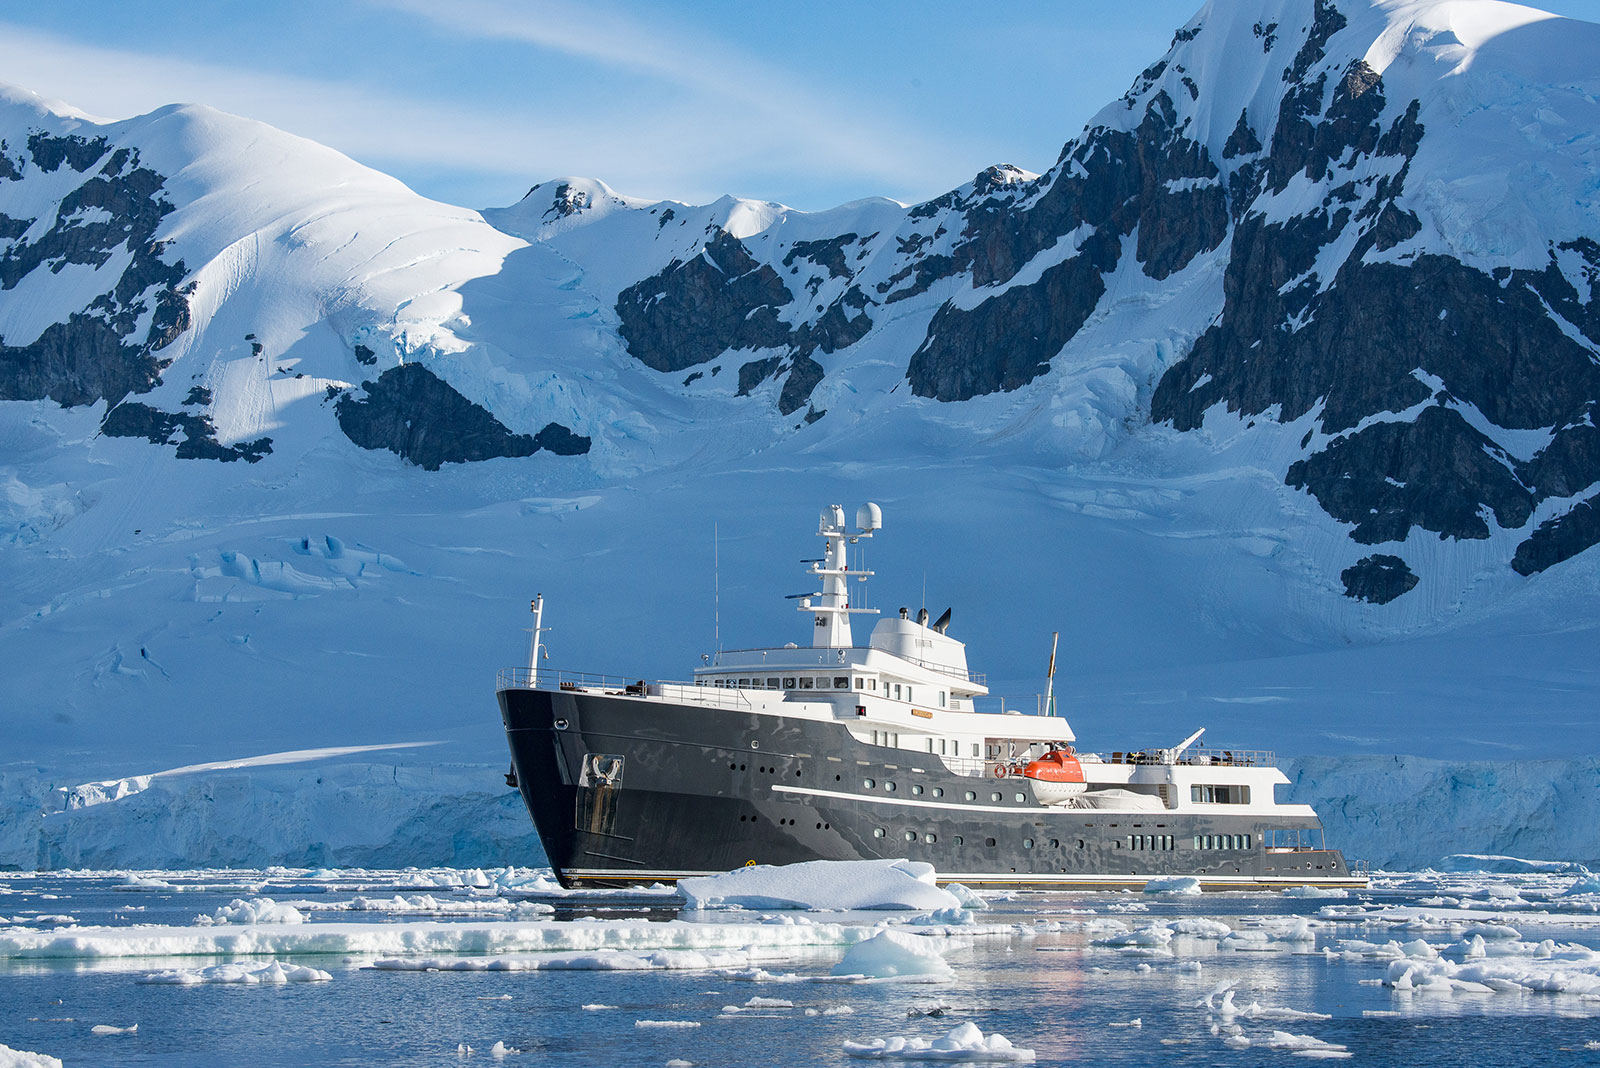 Yacht Legend in ice in Antarctica